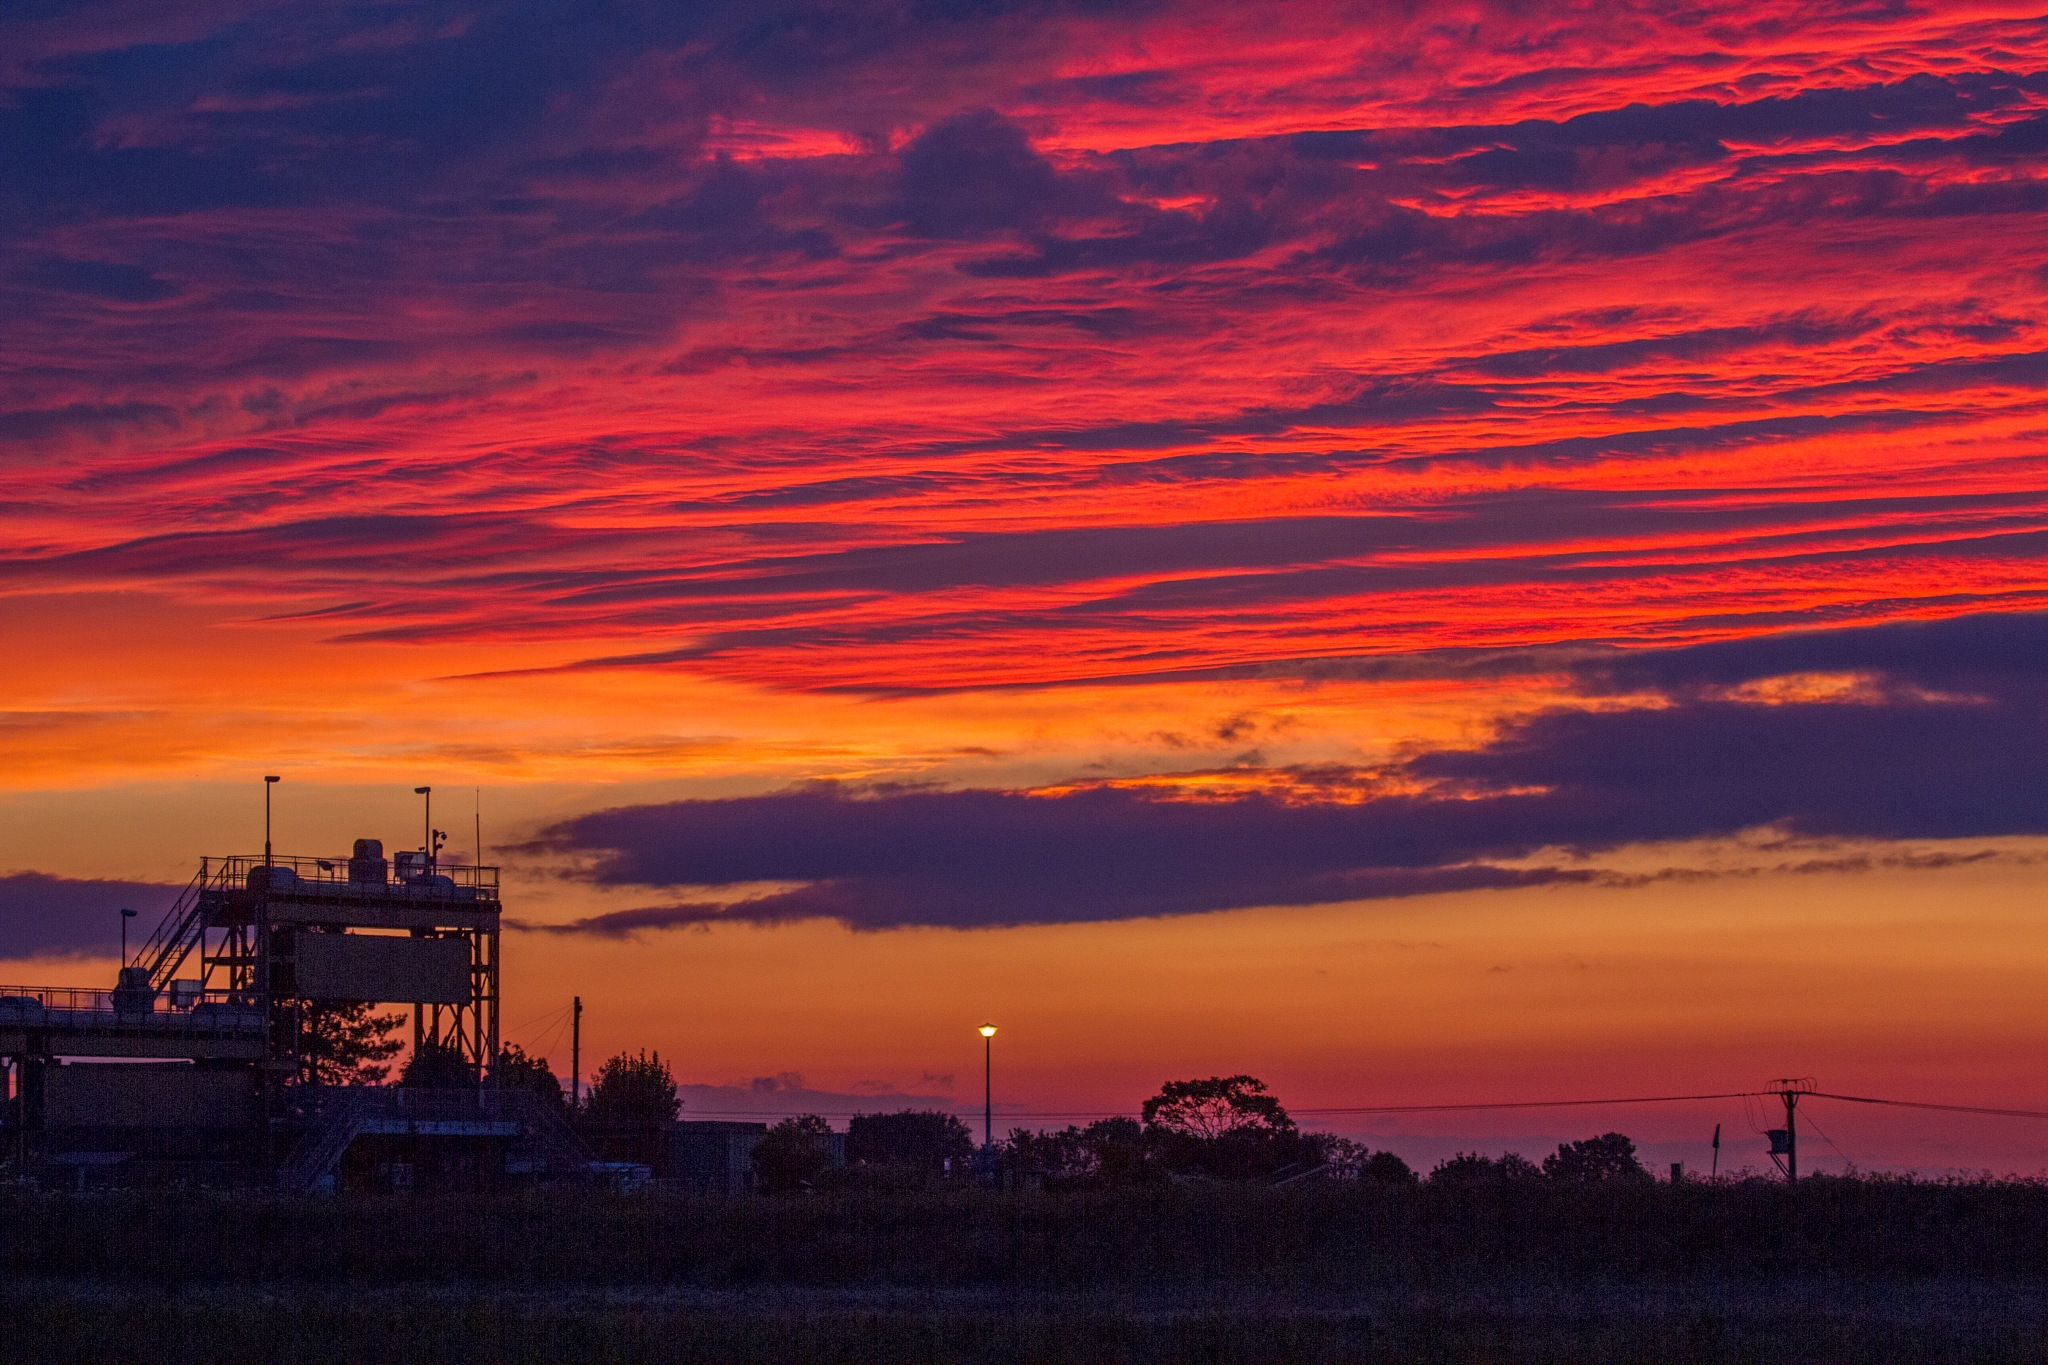 Sunset over North Bank Whittlesey Cambs by Andrew Walpole